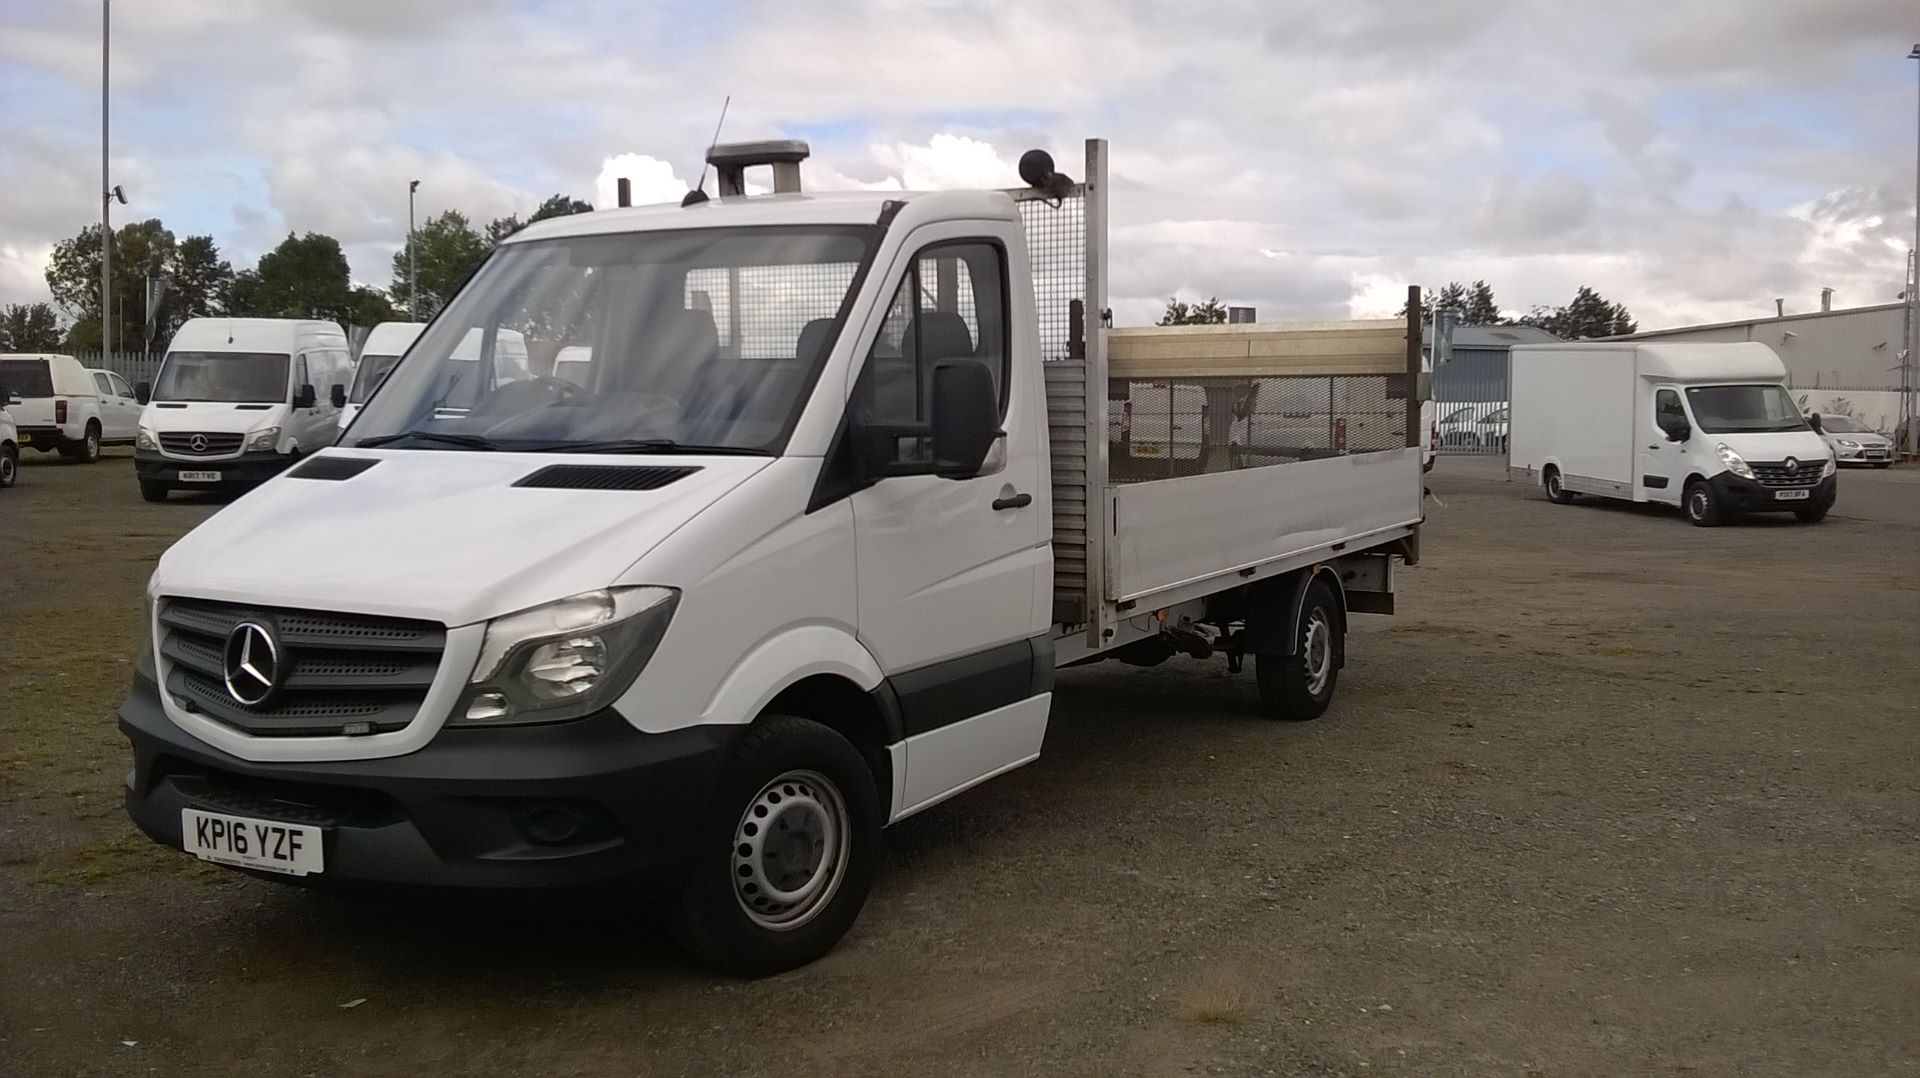 2016 Mercedes-Benz Sprinter 3.5T Chassis Cab  (VALUE RANGE VEHICLE CONDITION REFLECTED IN PRICE (KP16YZF) Image 8